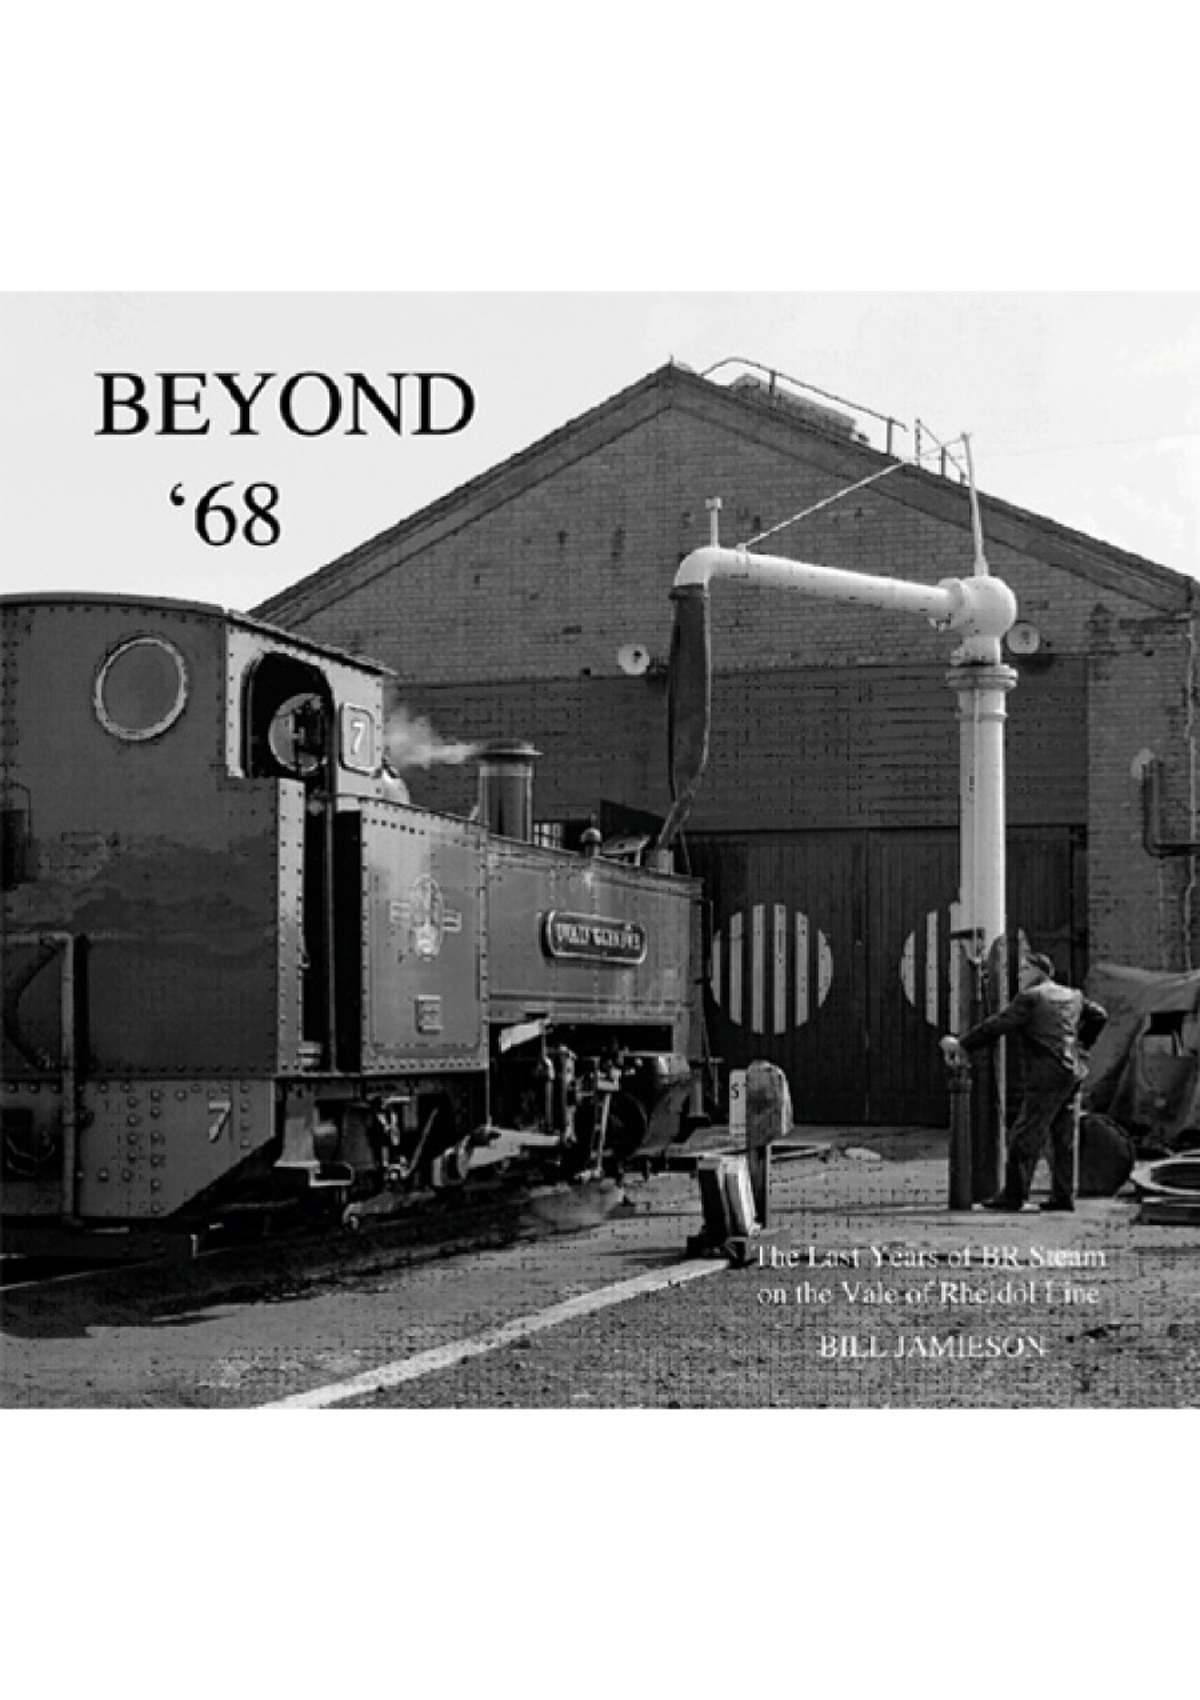 0408 - Beyond 68 - The Last Years of BR Steam on the Vale of Rheidol Line